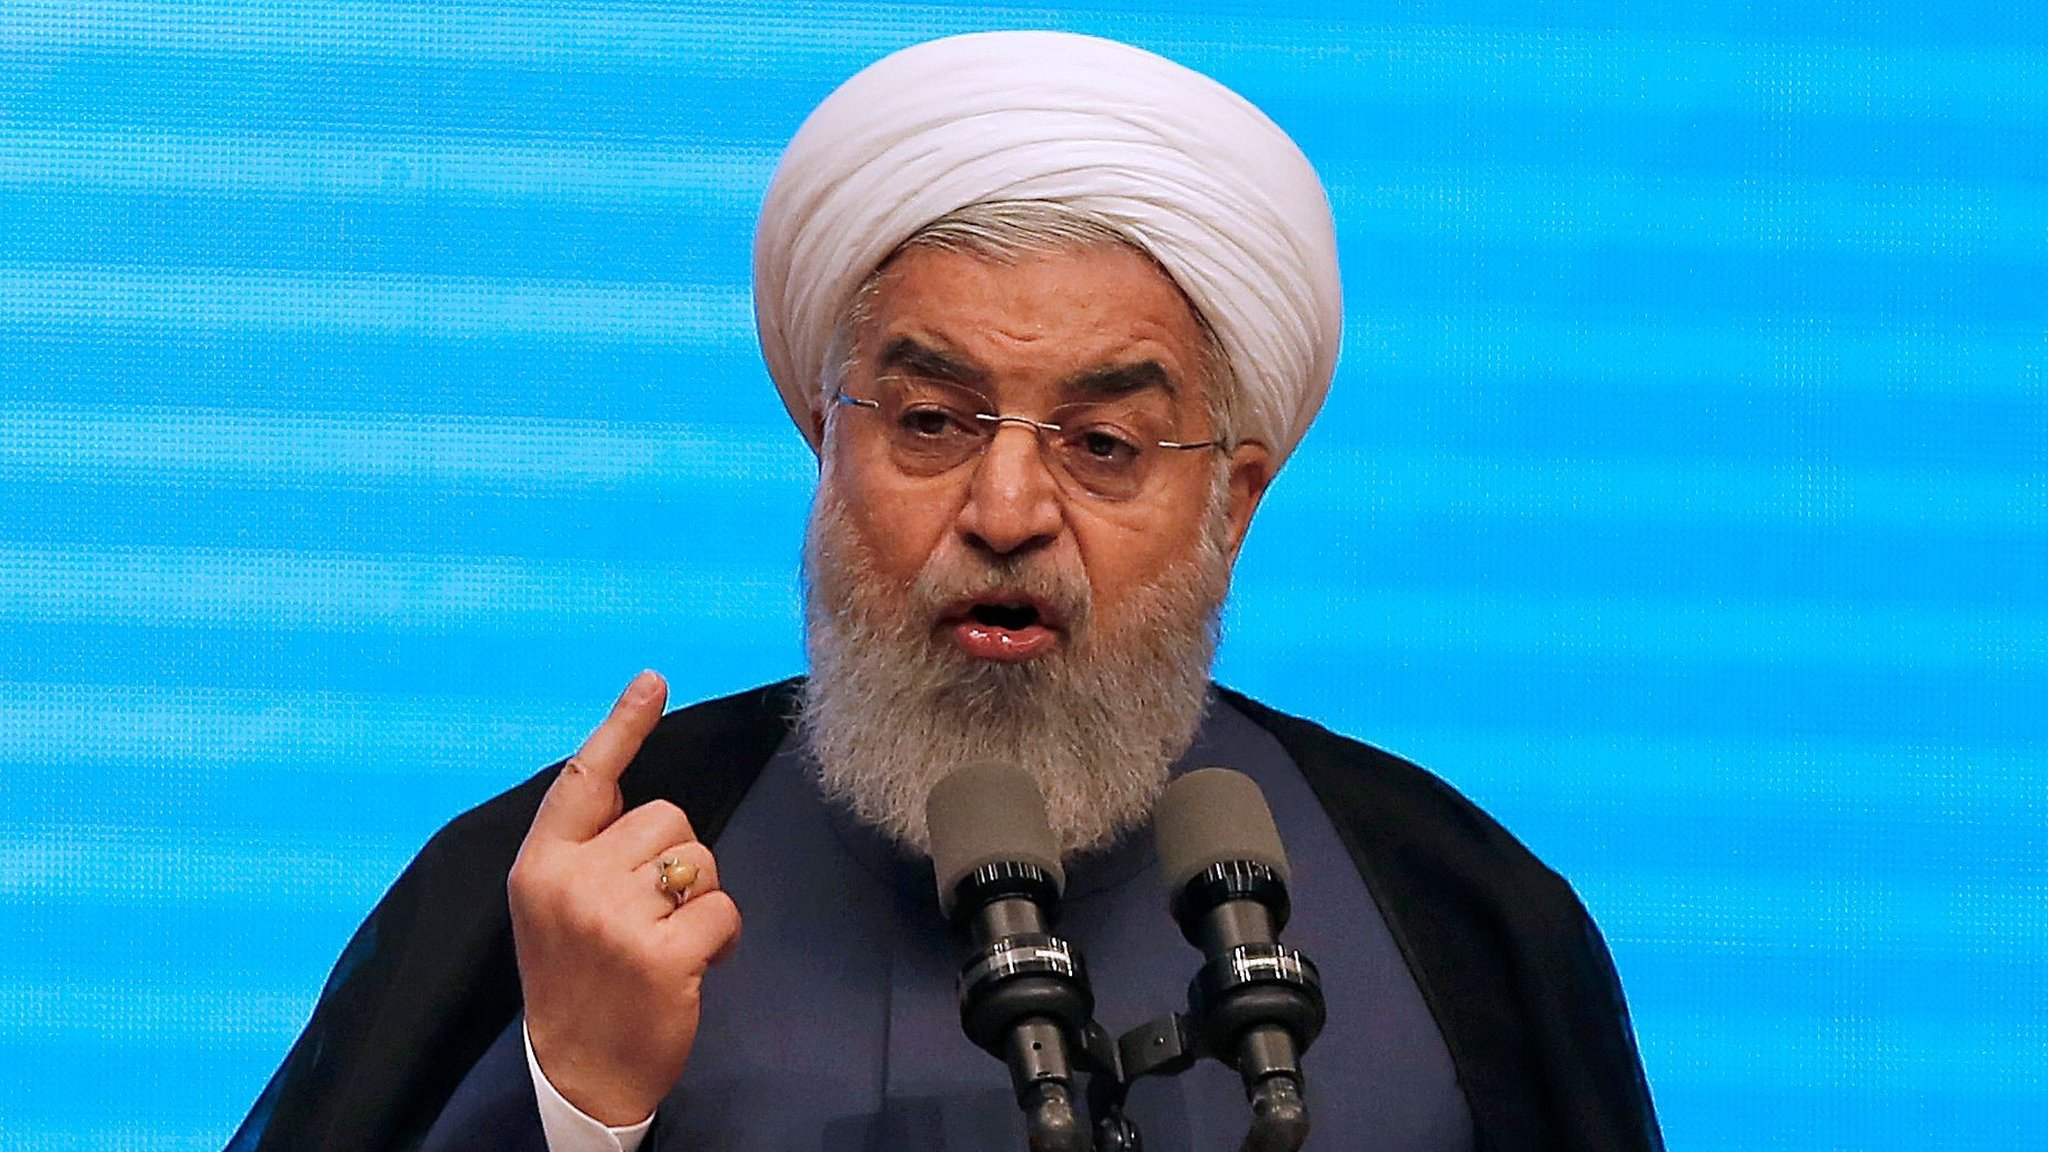 Iran nuclear deal: Rouhani says West has no right to make changes